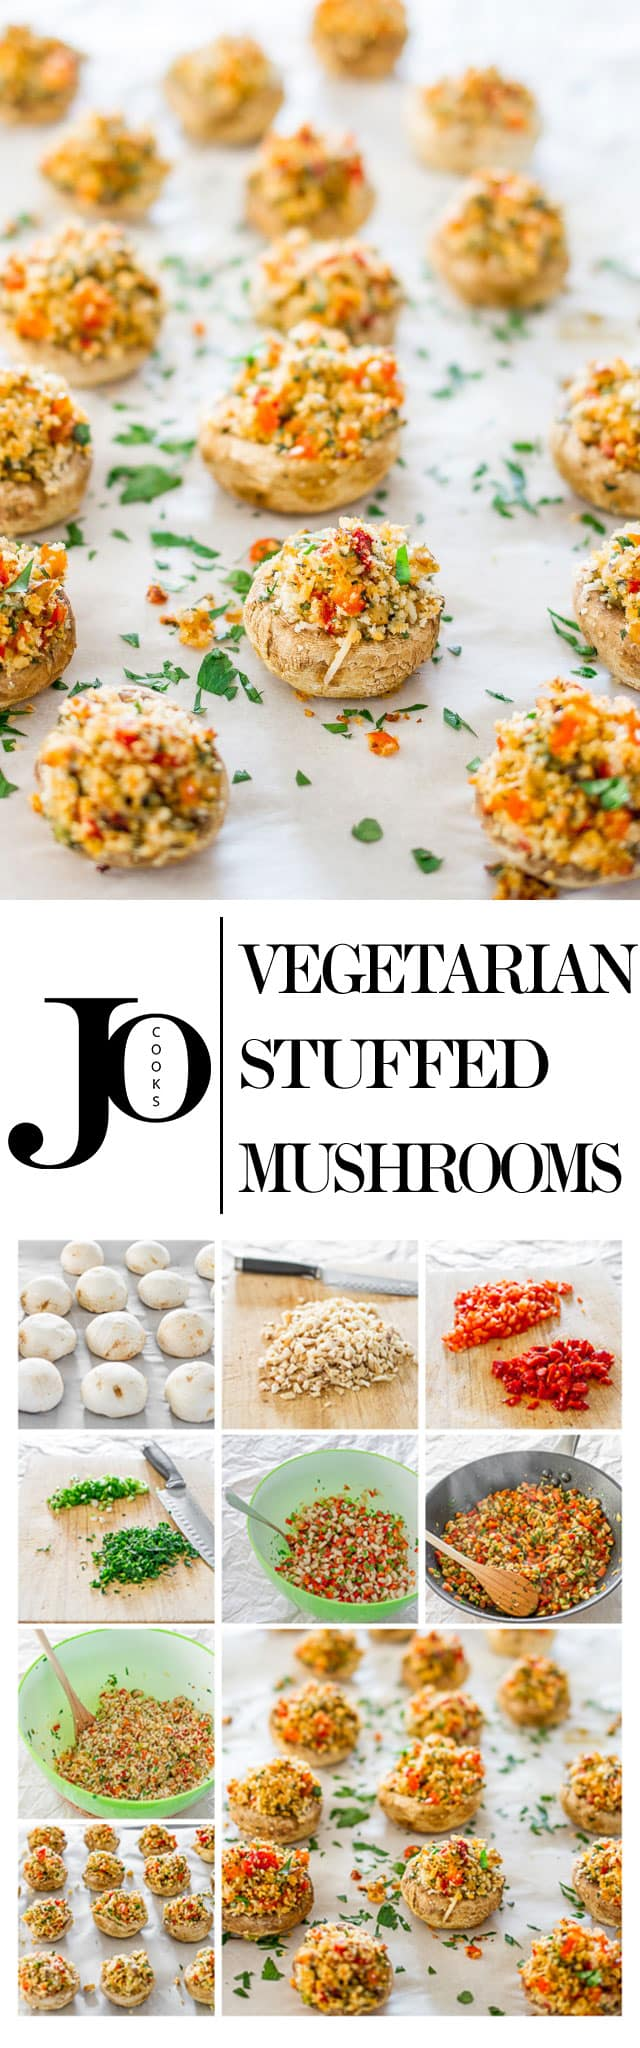 Vegetarian stuffed mushrooms made healthy by just stuffing them with onions, mushroom stems, roasted peppers and a bit of freshly grated Parmesan cheese.